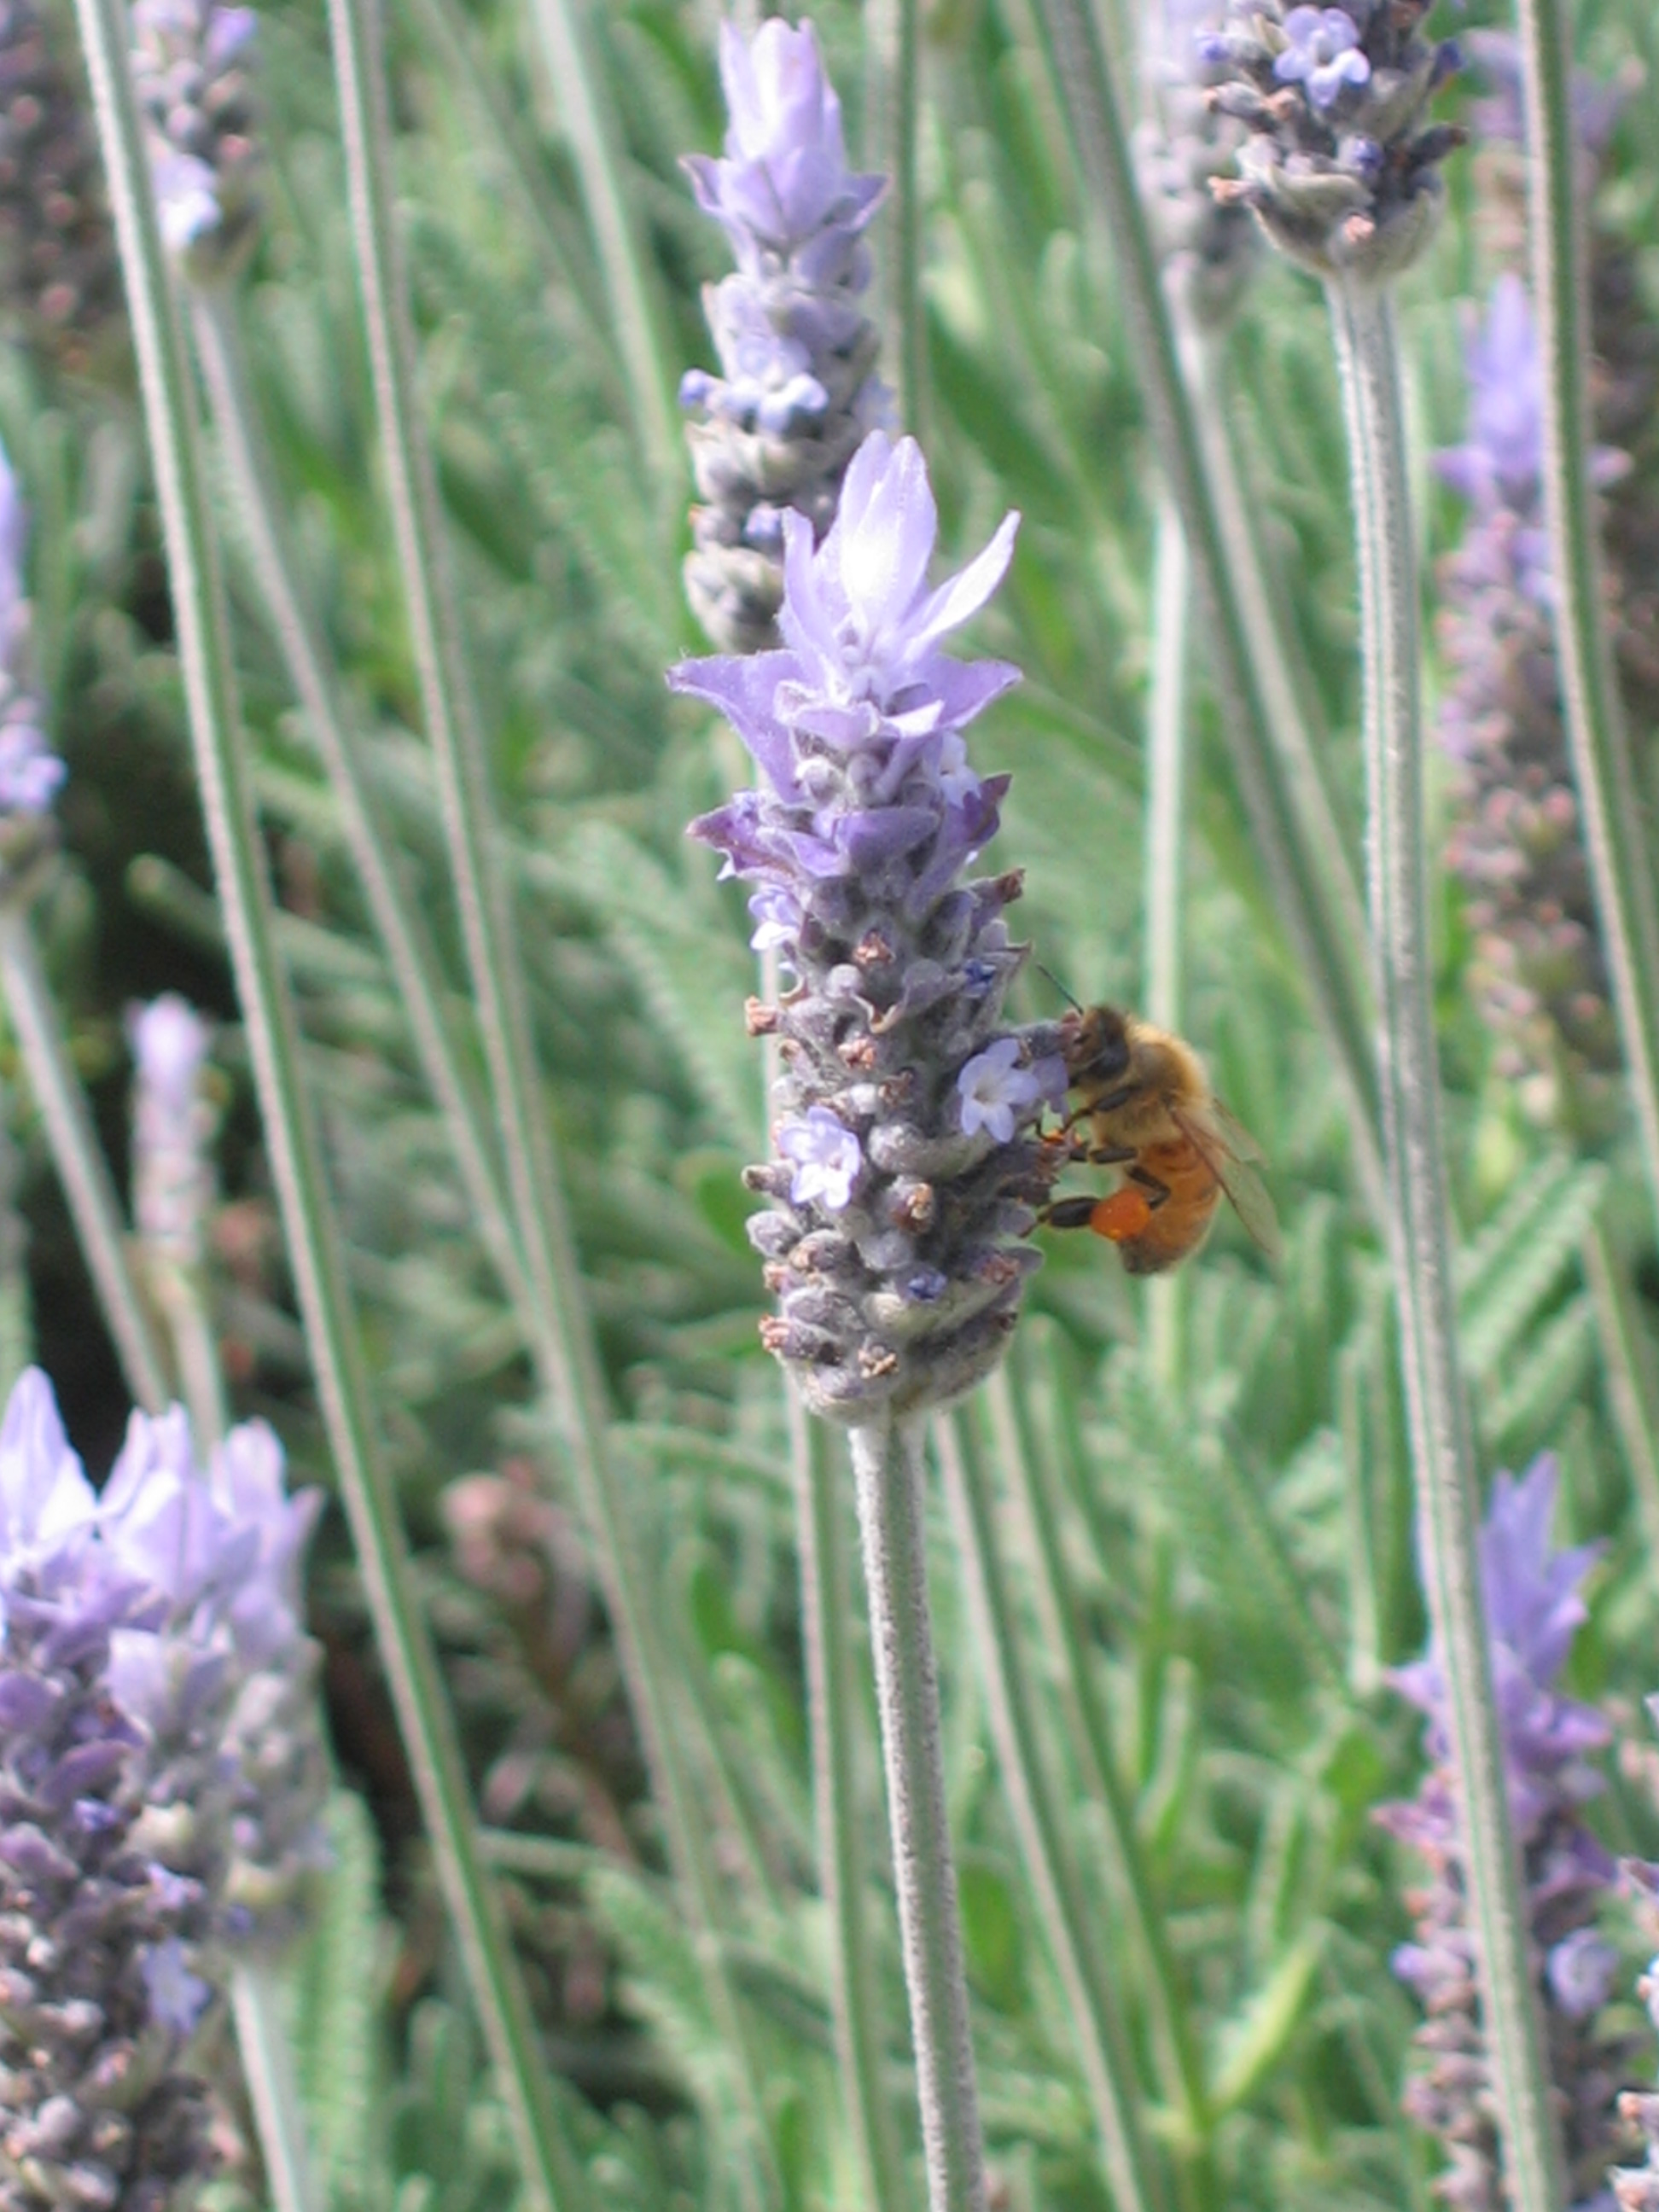 Lavender smell wonderful and are great for attracting pollinators into your garden.